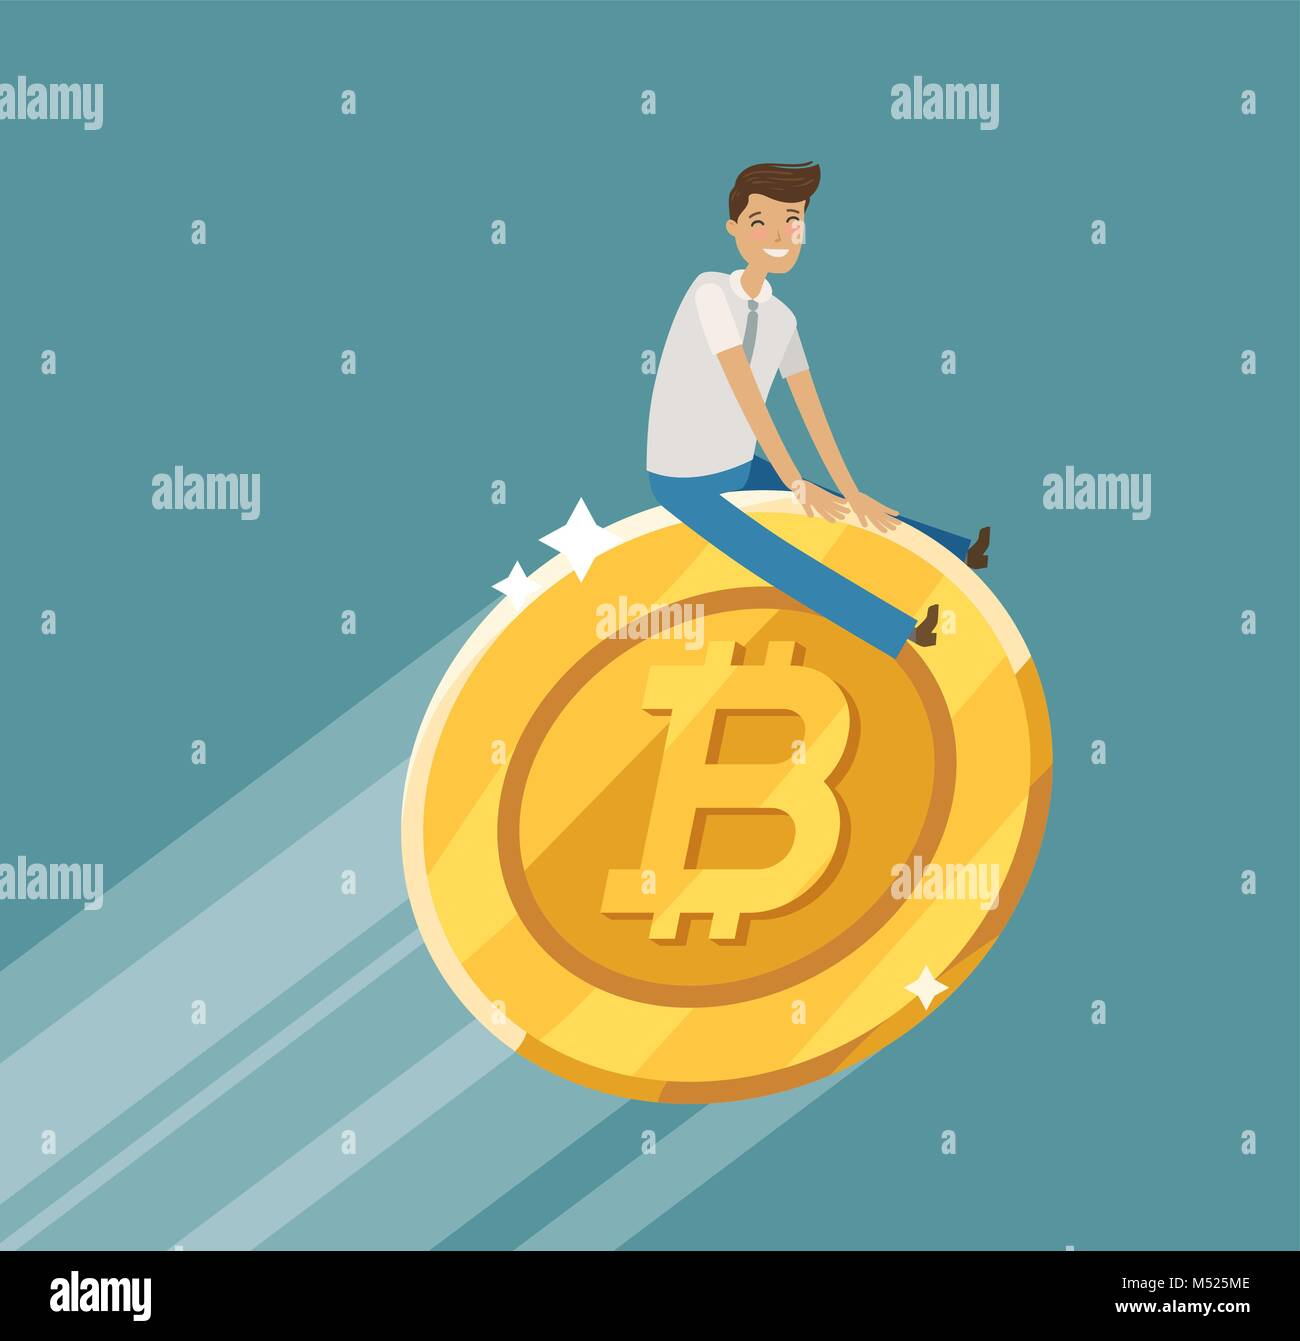 Business concept. Bitcoin crypto currency blockchain. Cartoon vector illustration - Stock Image